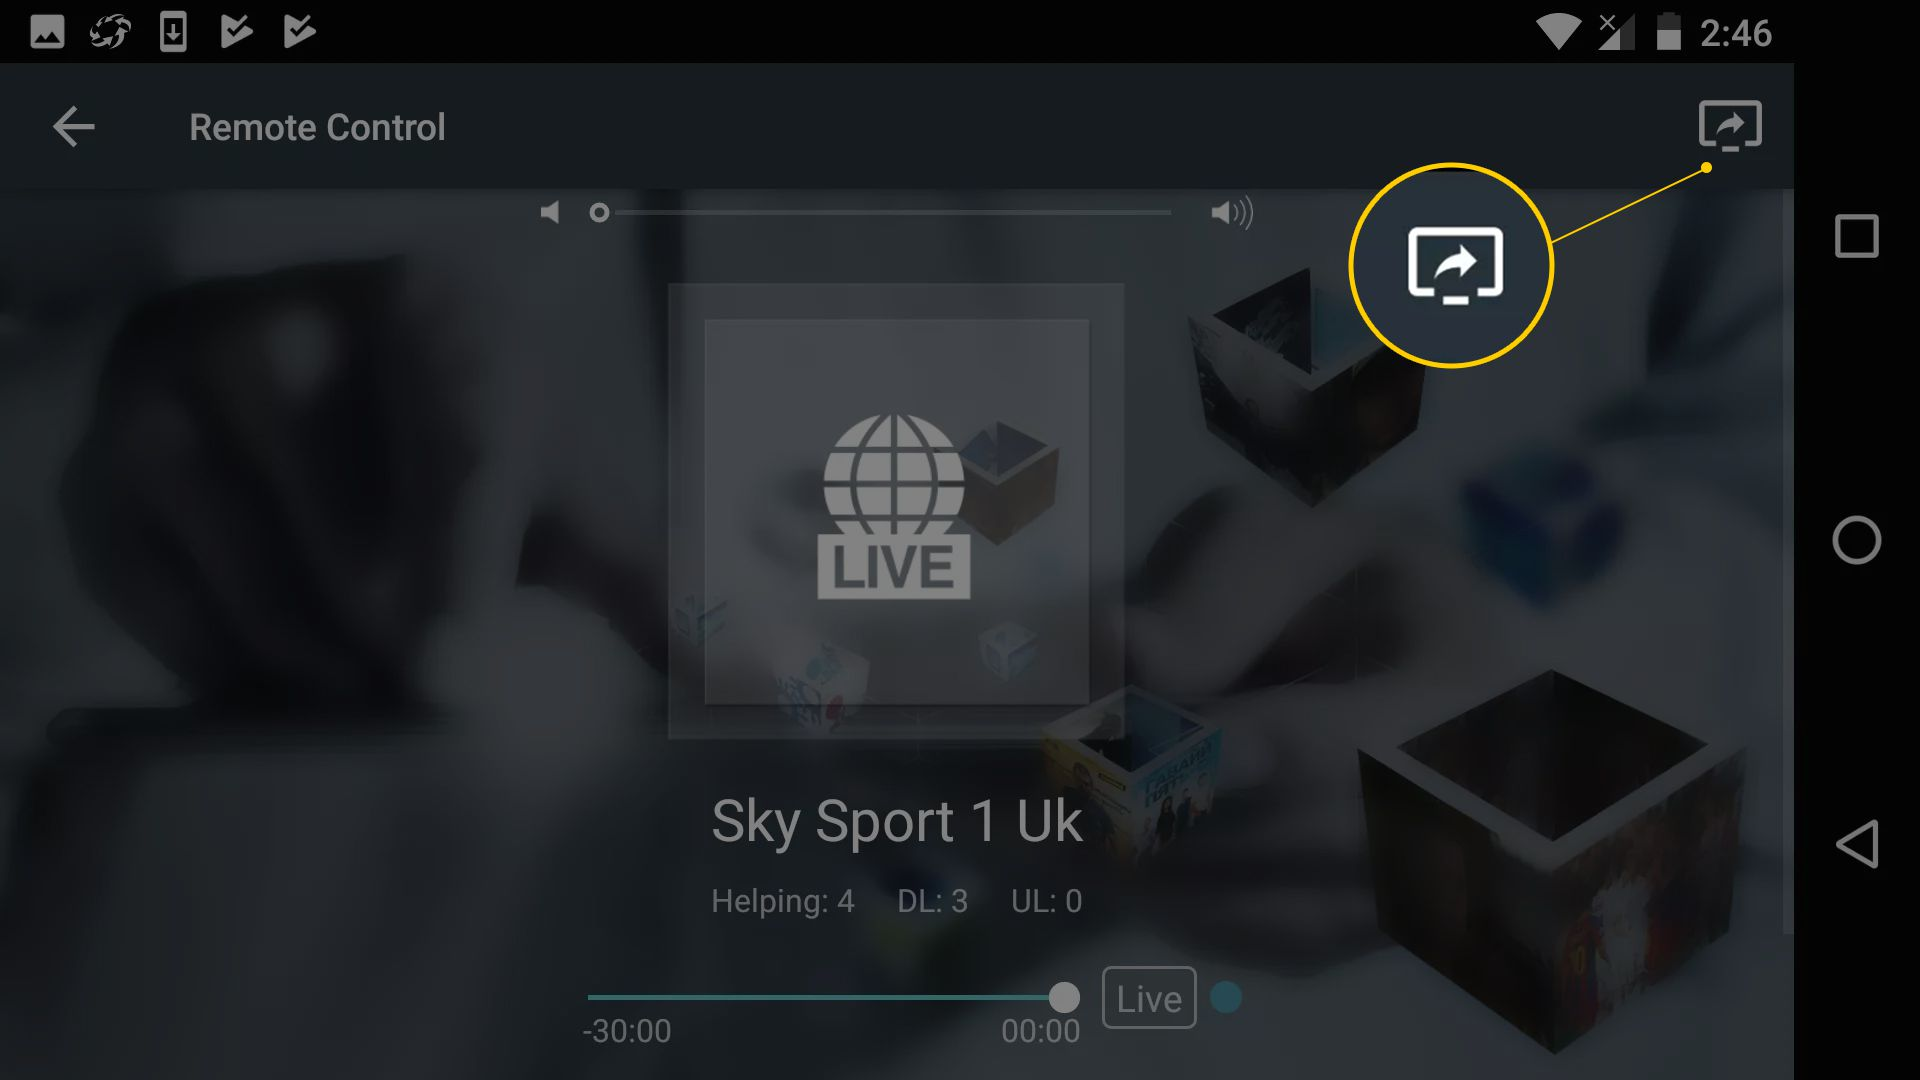 How to Use AceStream to Watch Live Sports